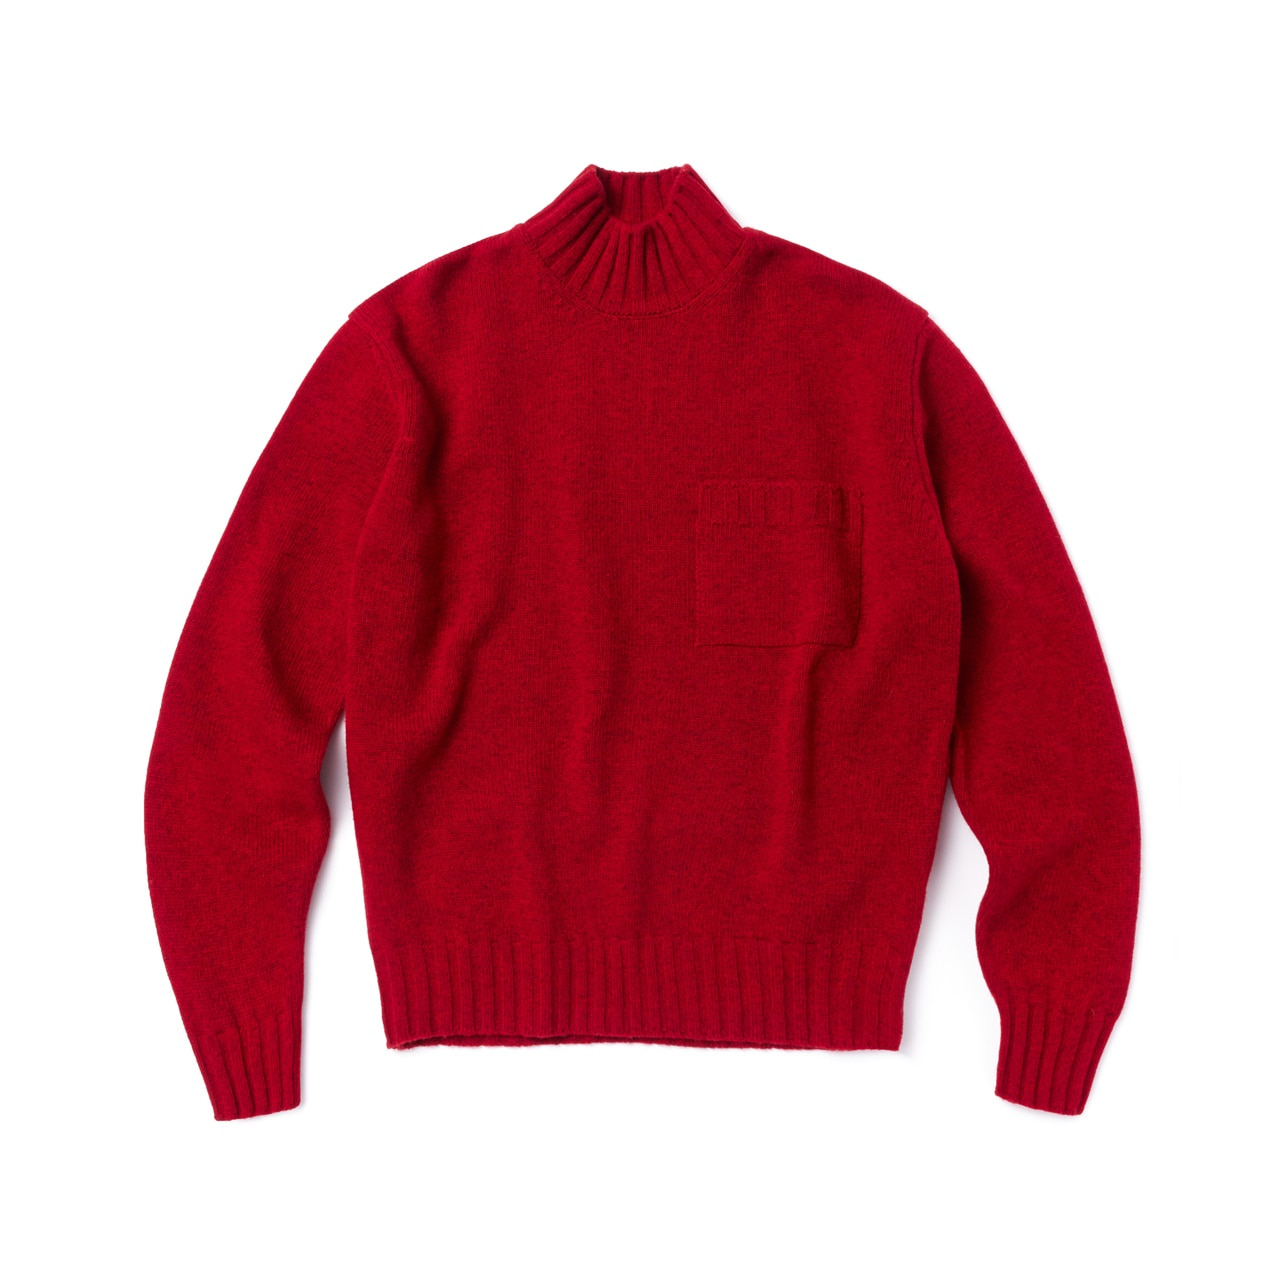 -[AMFEAST] RED BIG POCKET SWEATER